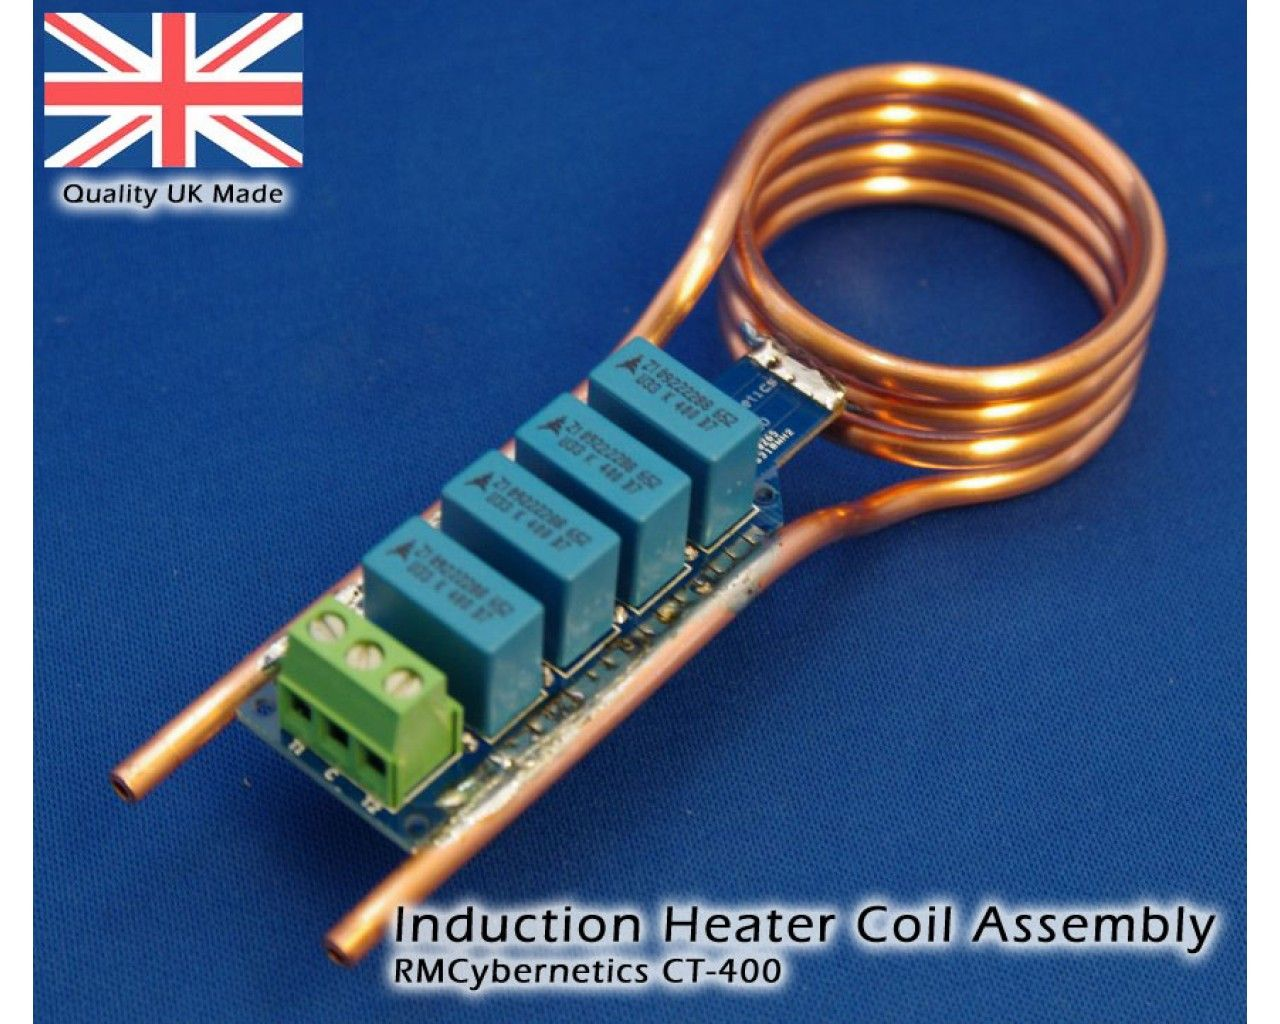 Induction Heater Coil Heating Pinterest Arduino With Simple Together Circuit